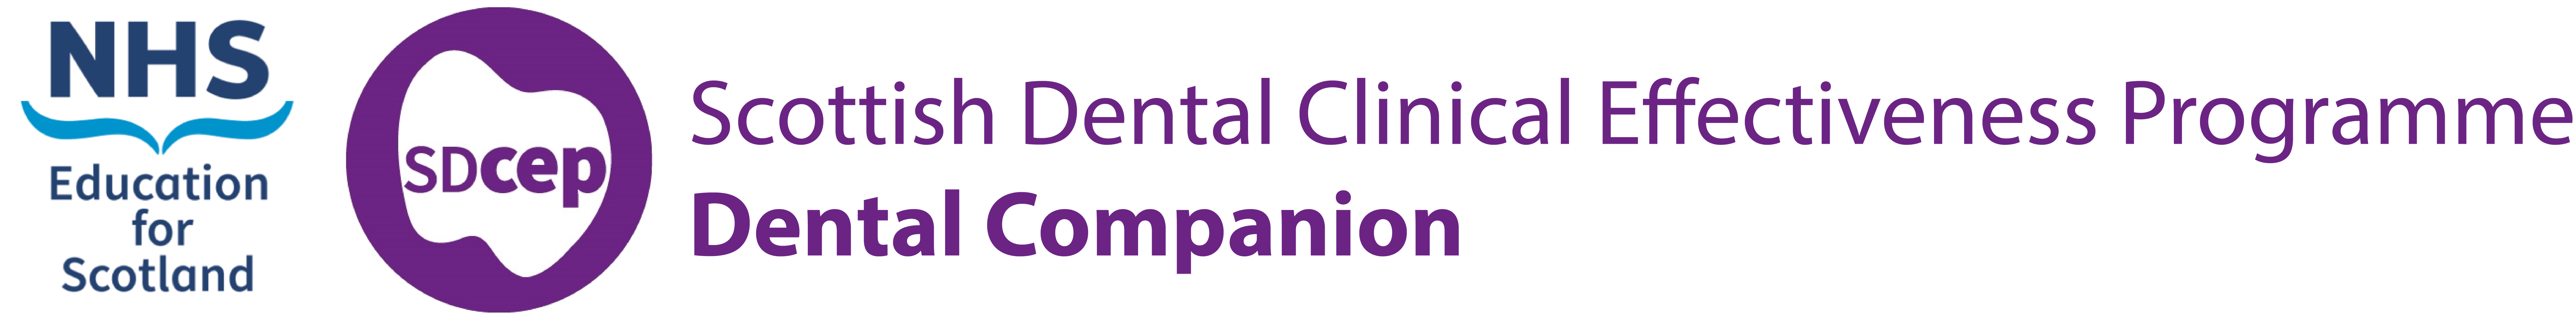 Scottish Dental Clinical Effectiveness Programme